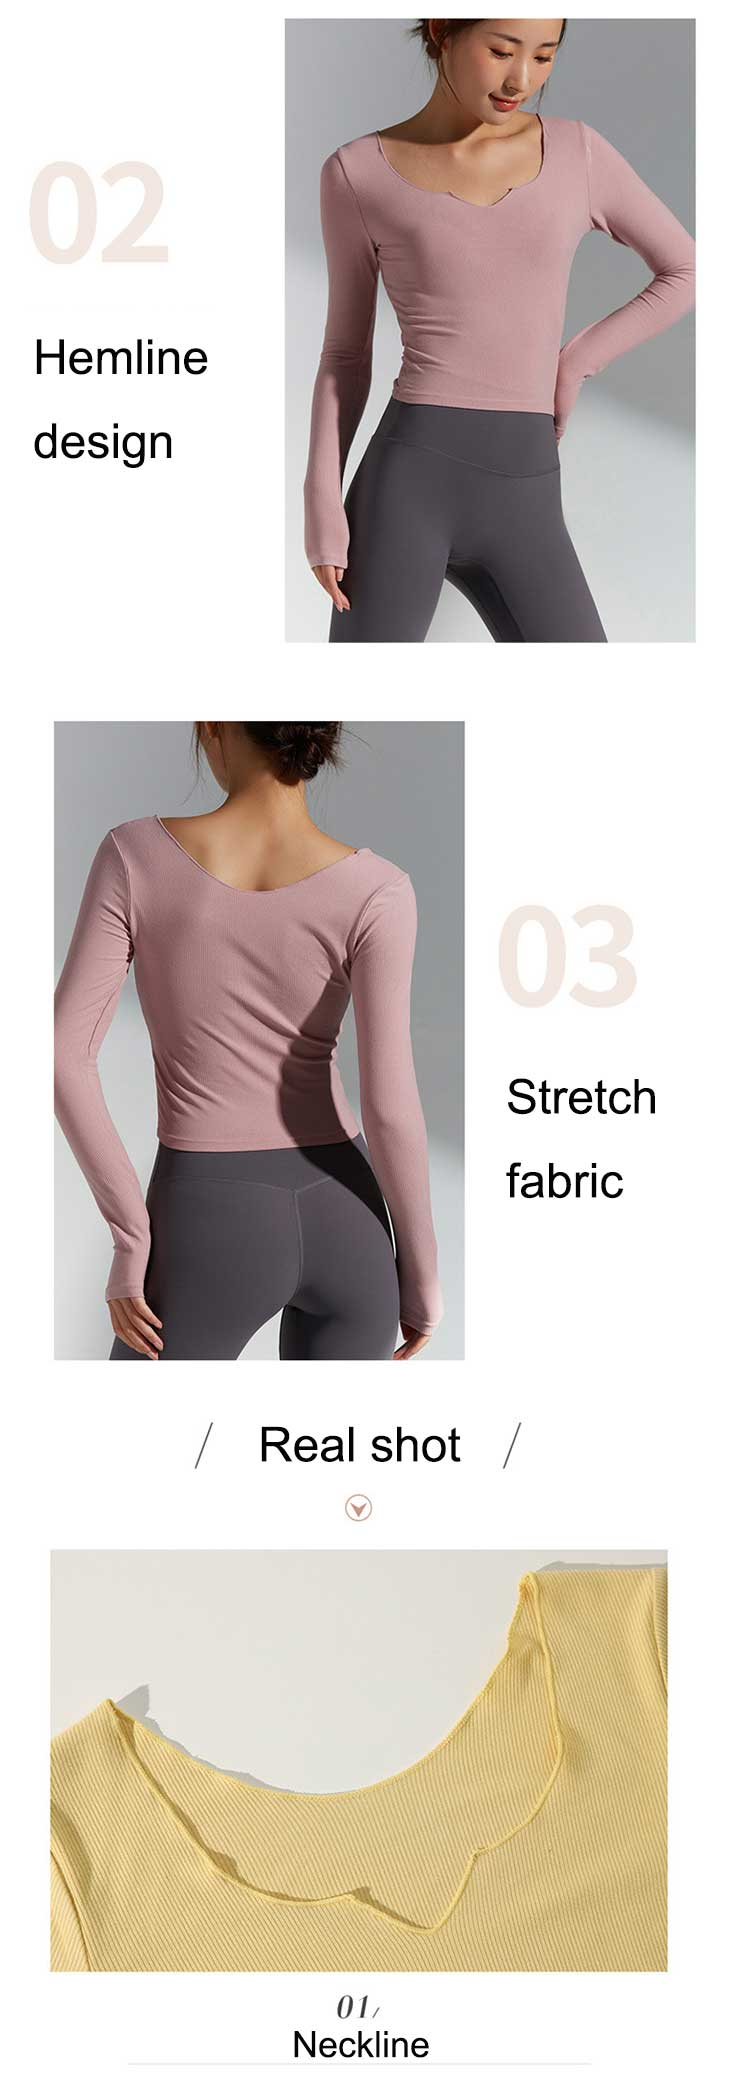 show-figure-after-putting-on.-With-elastic-fabric,not-tight,-highlighting